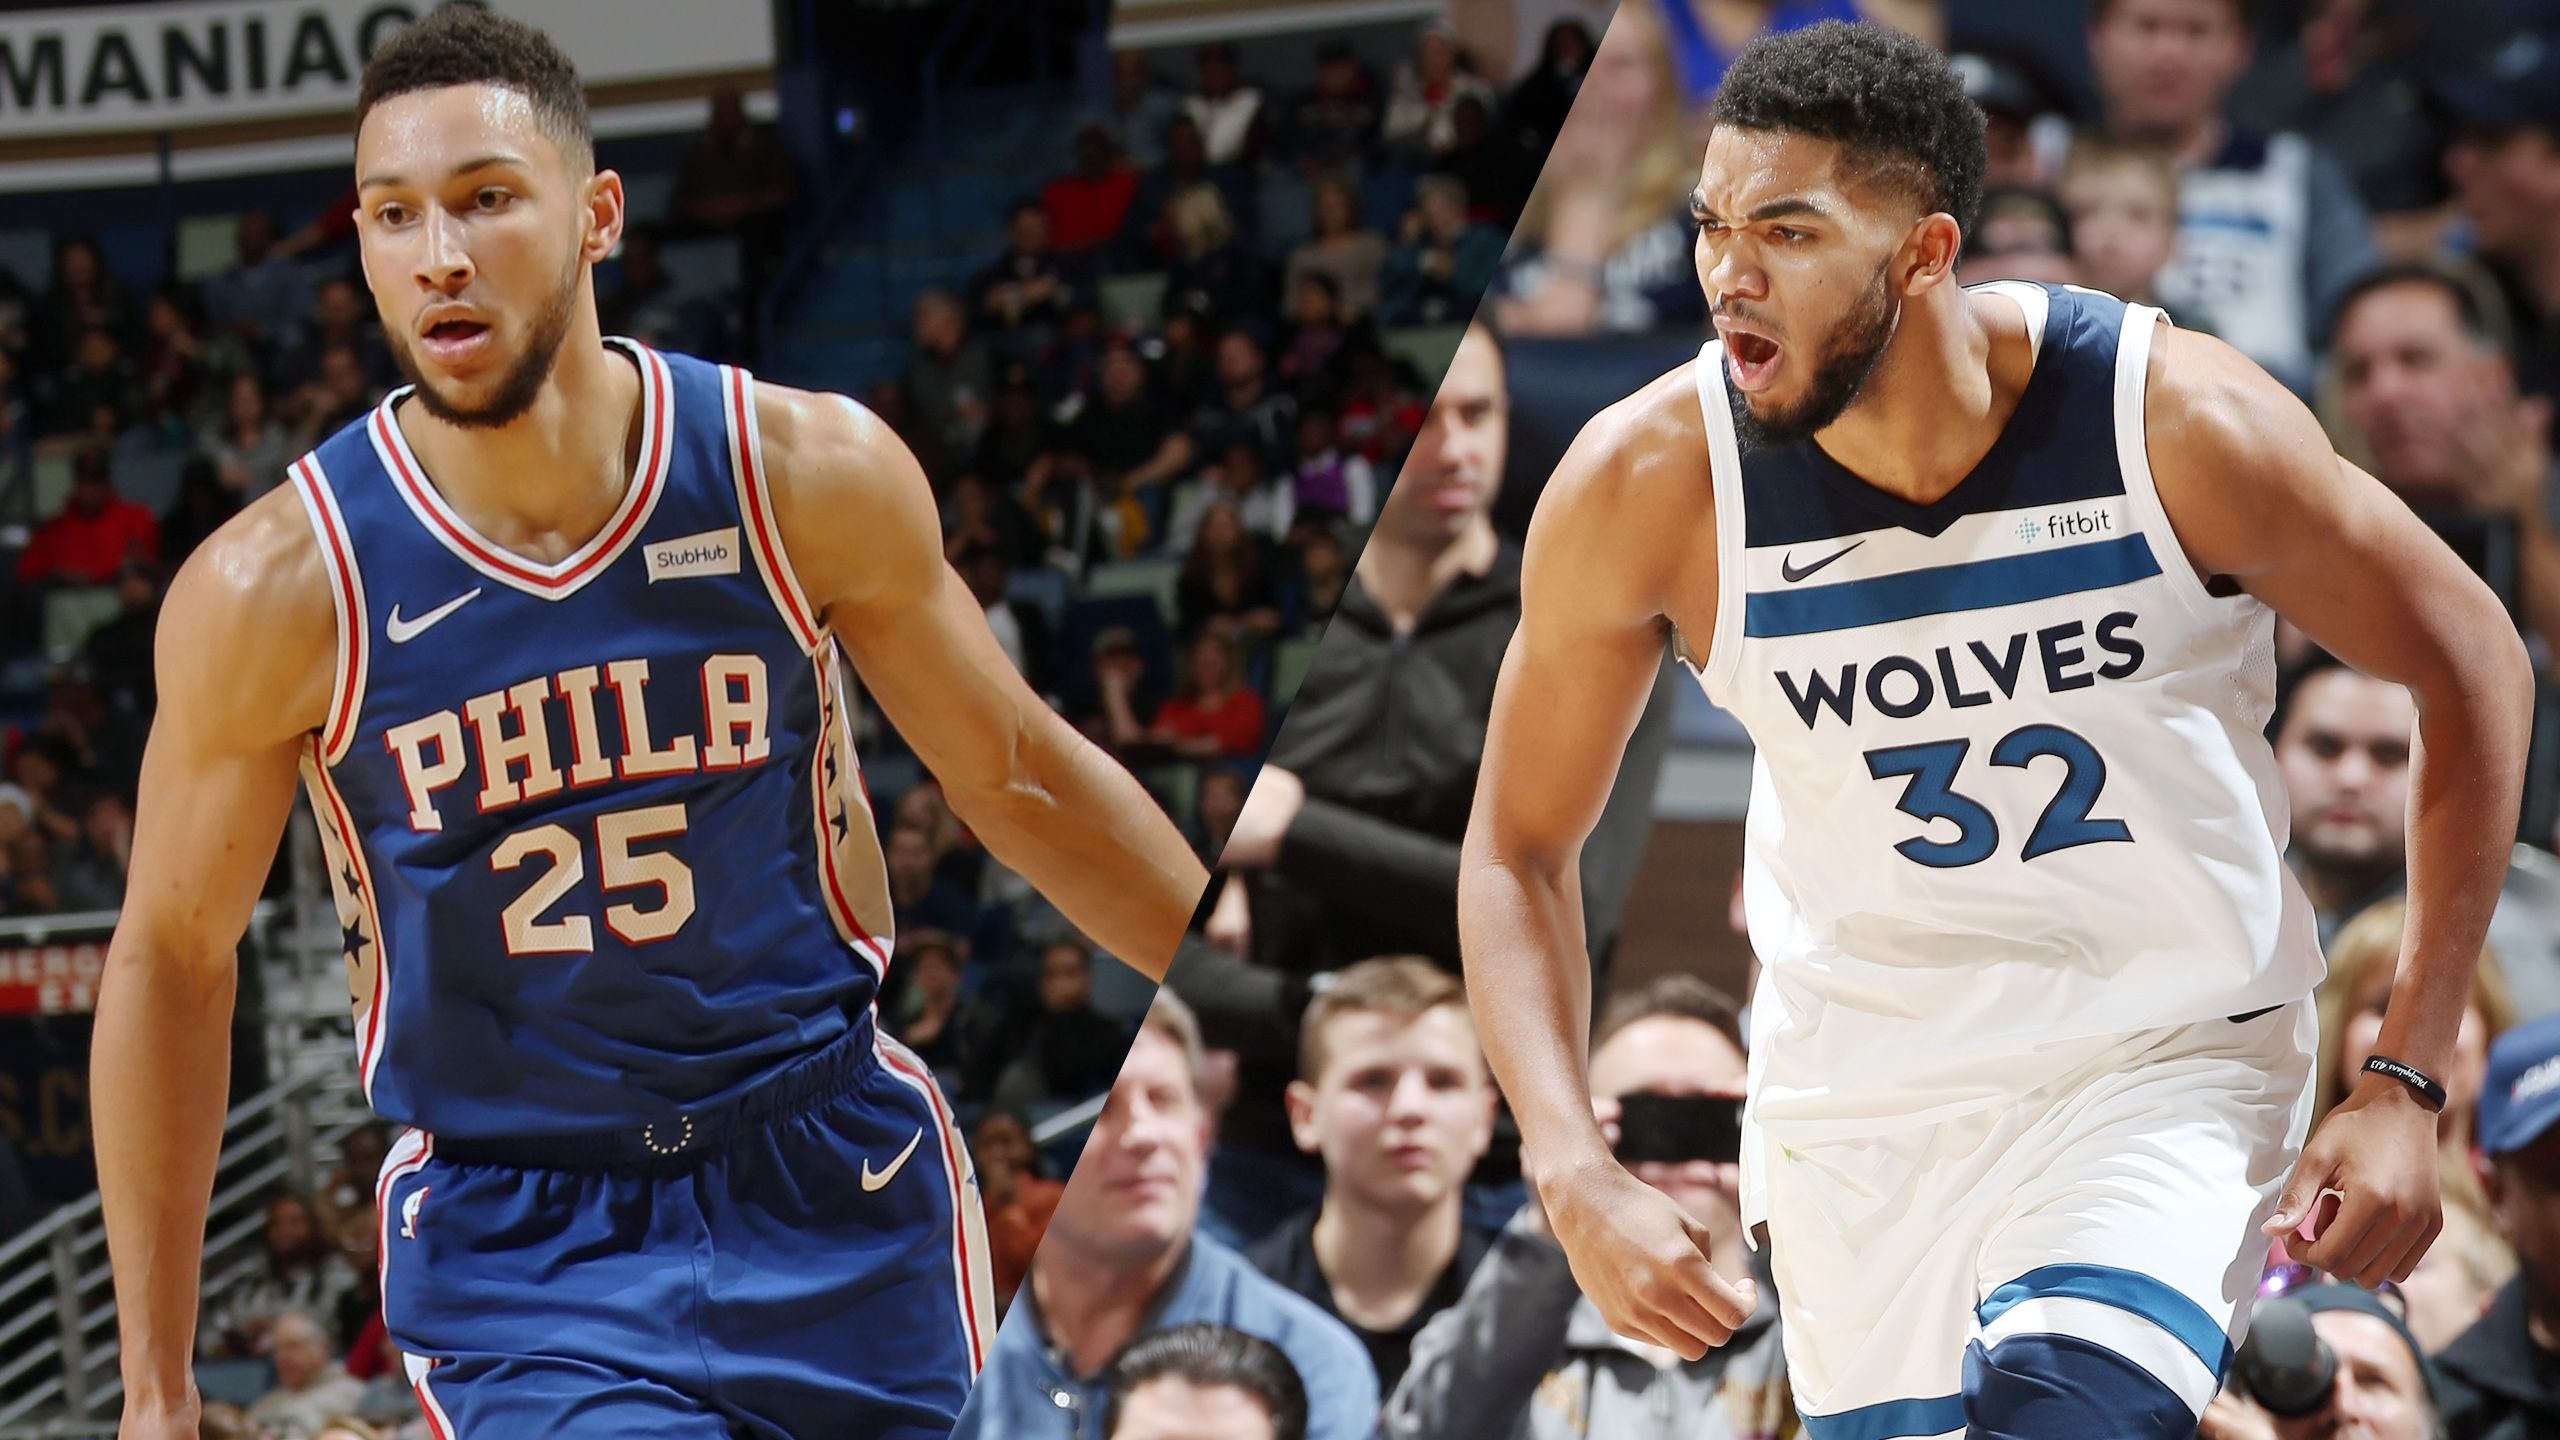 Philadelphia 76ers vs. Minnesota Timberwolves (re-air)